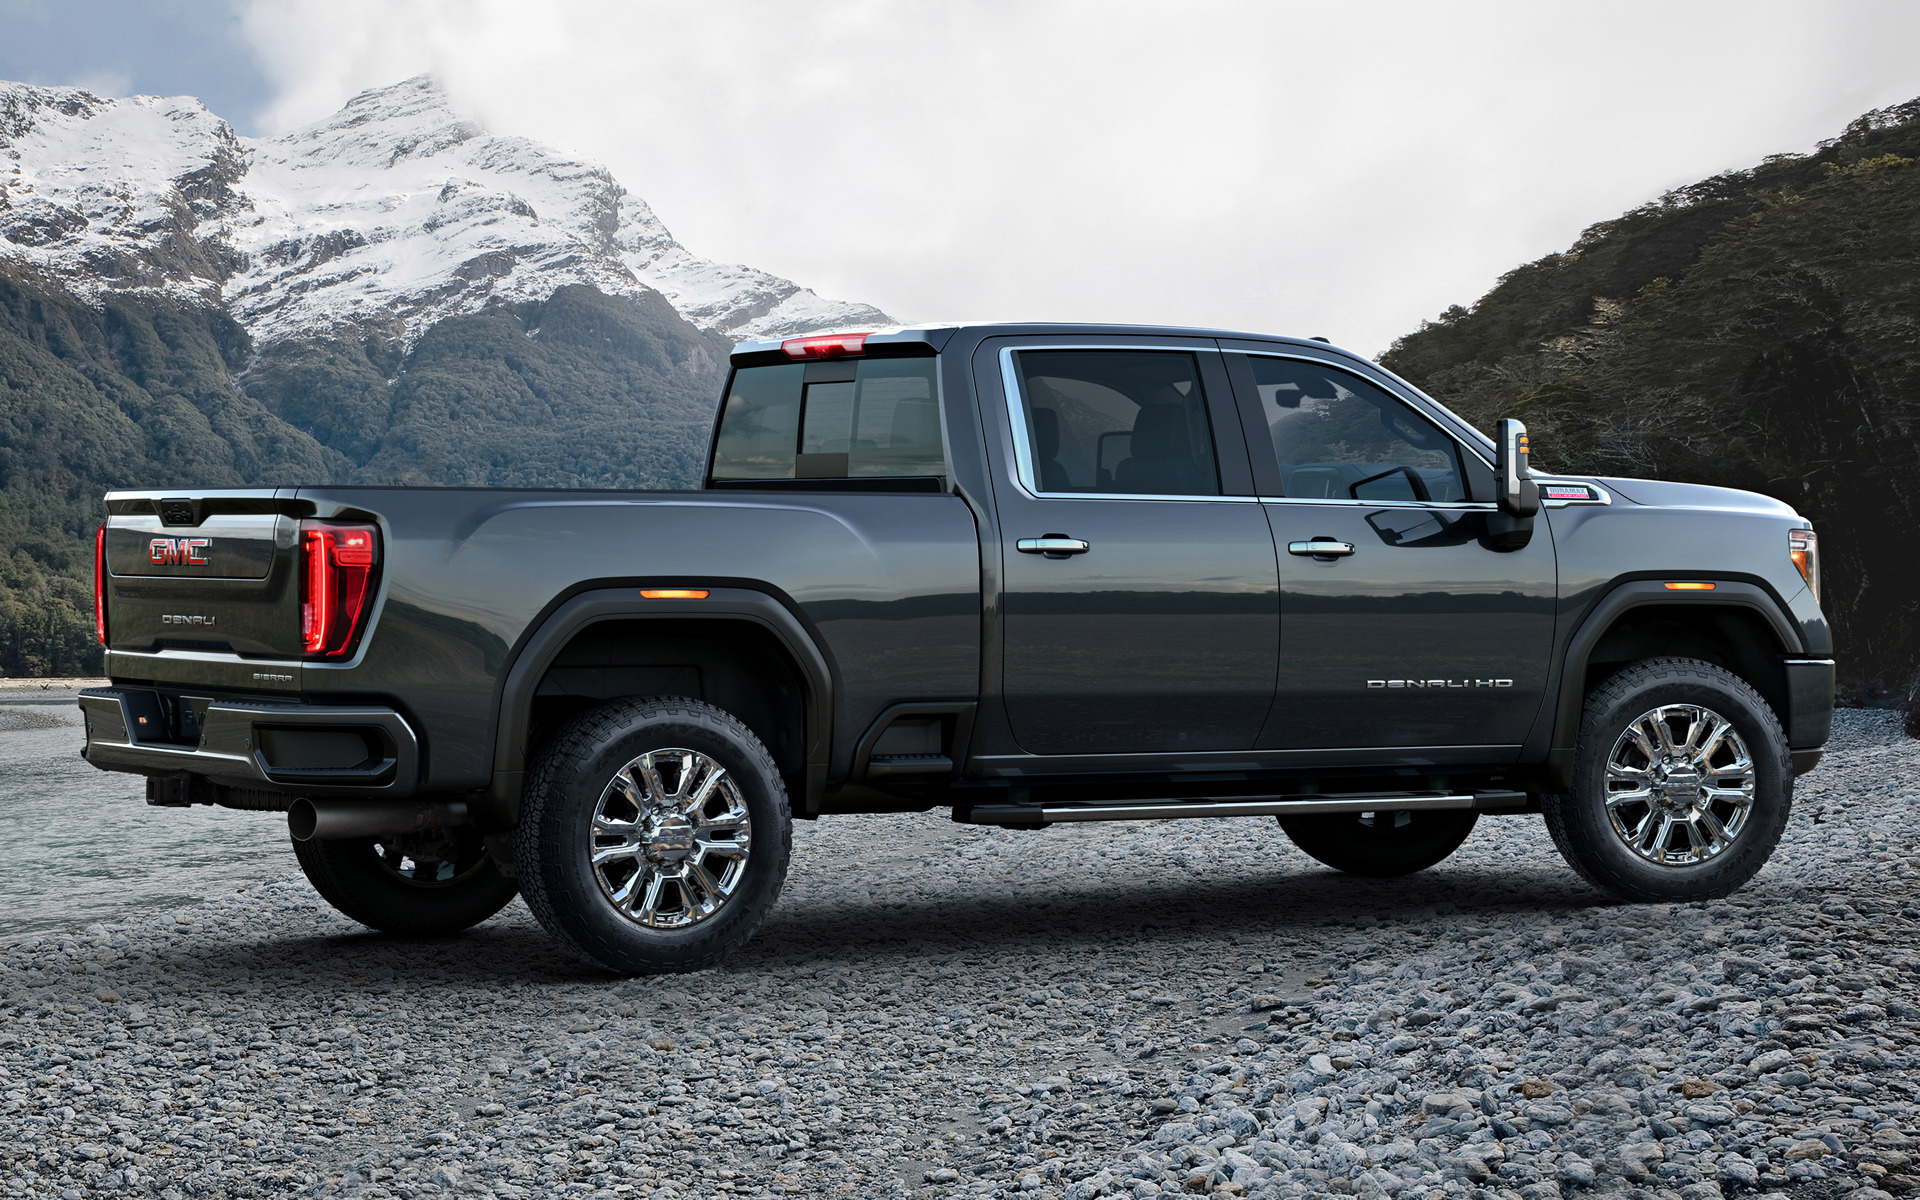 2020 GMC Sierra 2500 HD Denali Crew Cab - Wallpapers and ...